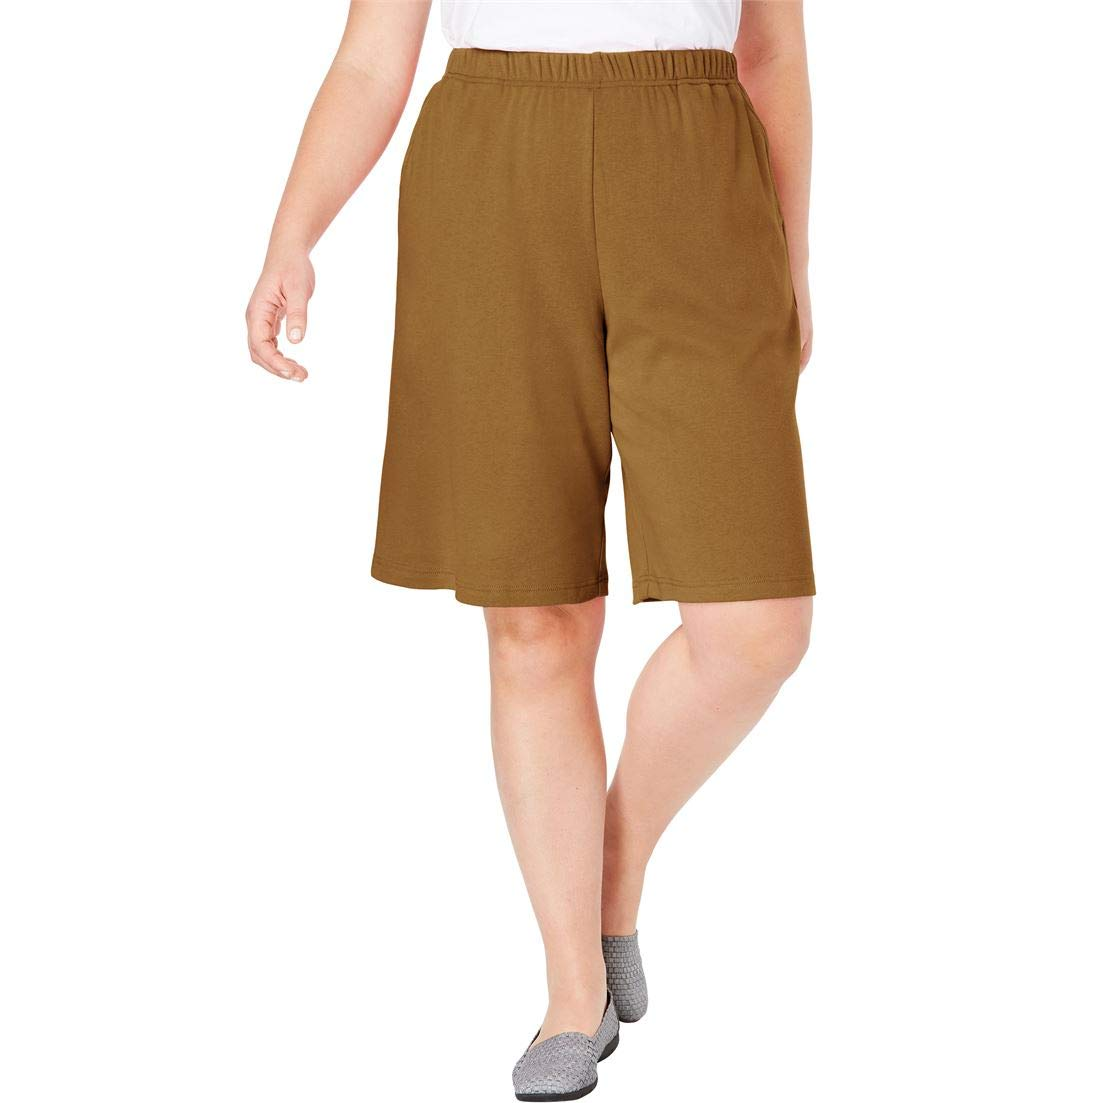 Woman Within Plus Size 7-Day Knit Short - Soft Brown, L